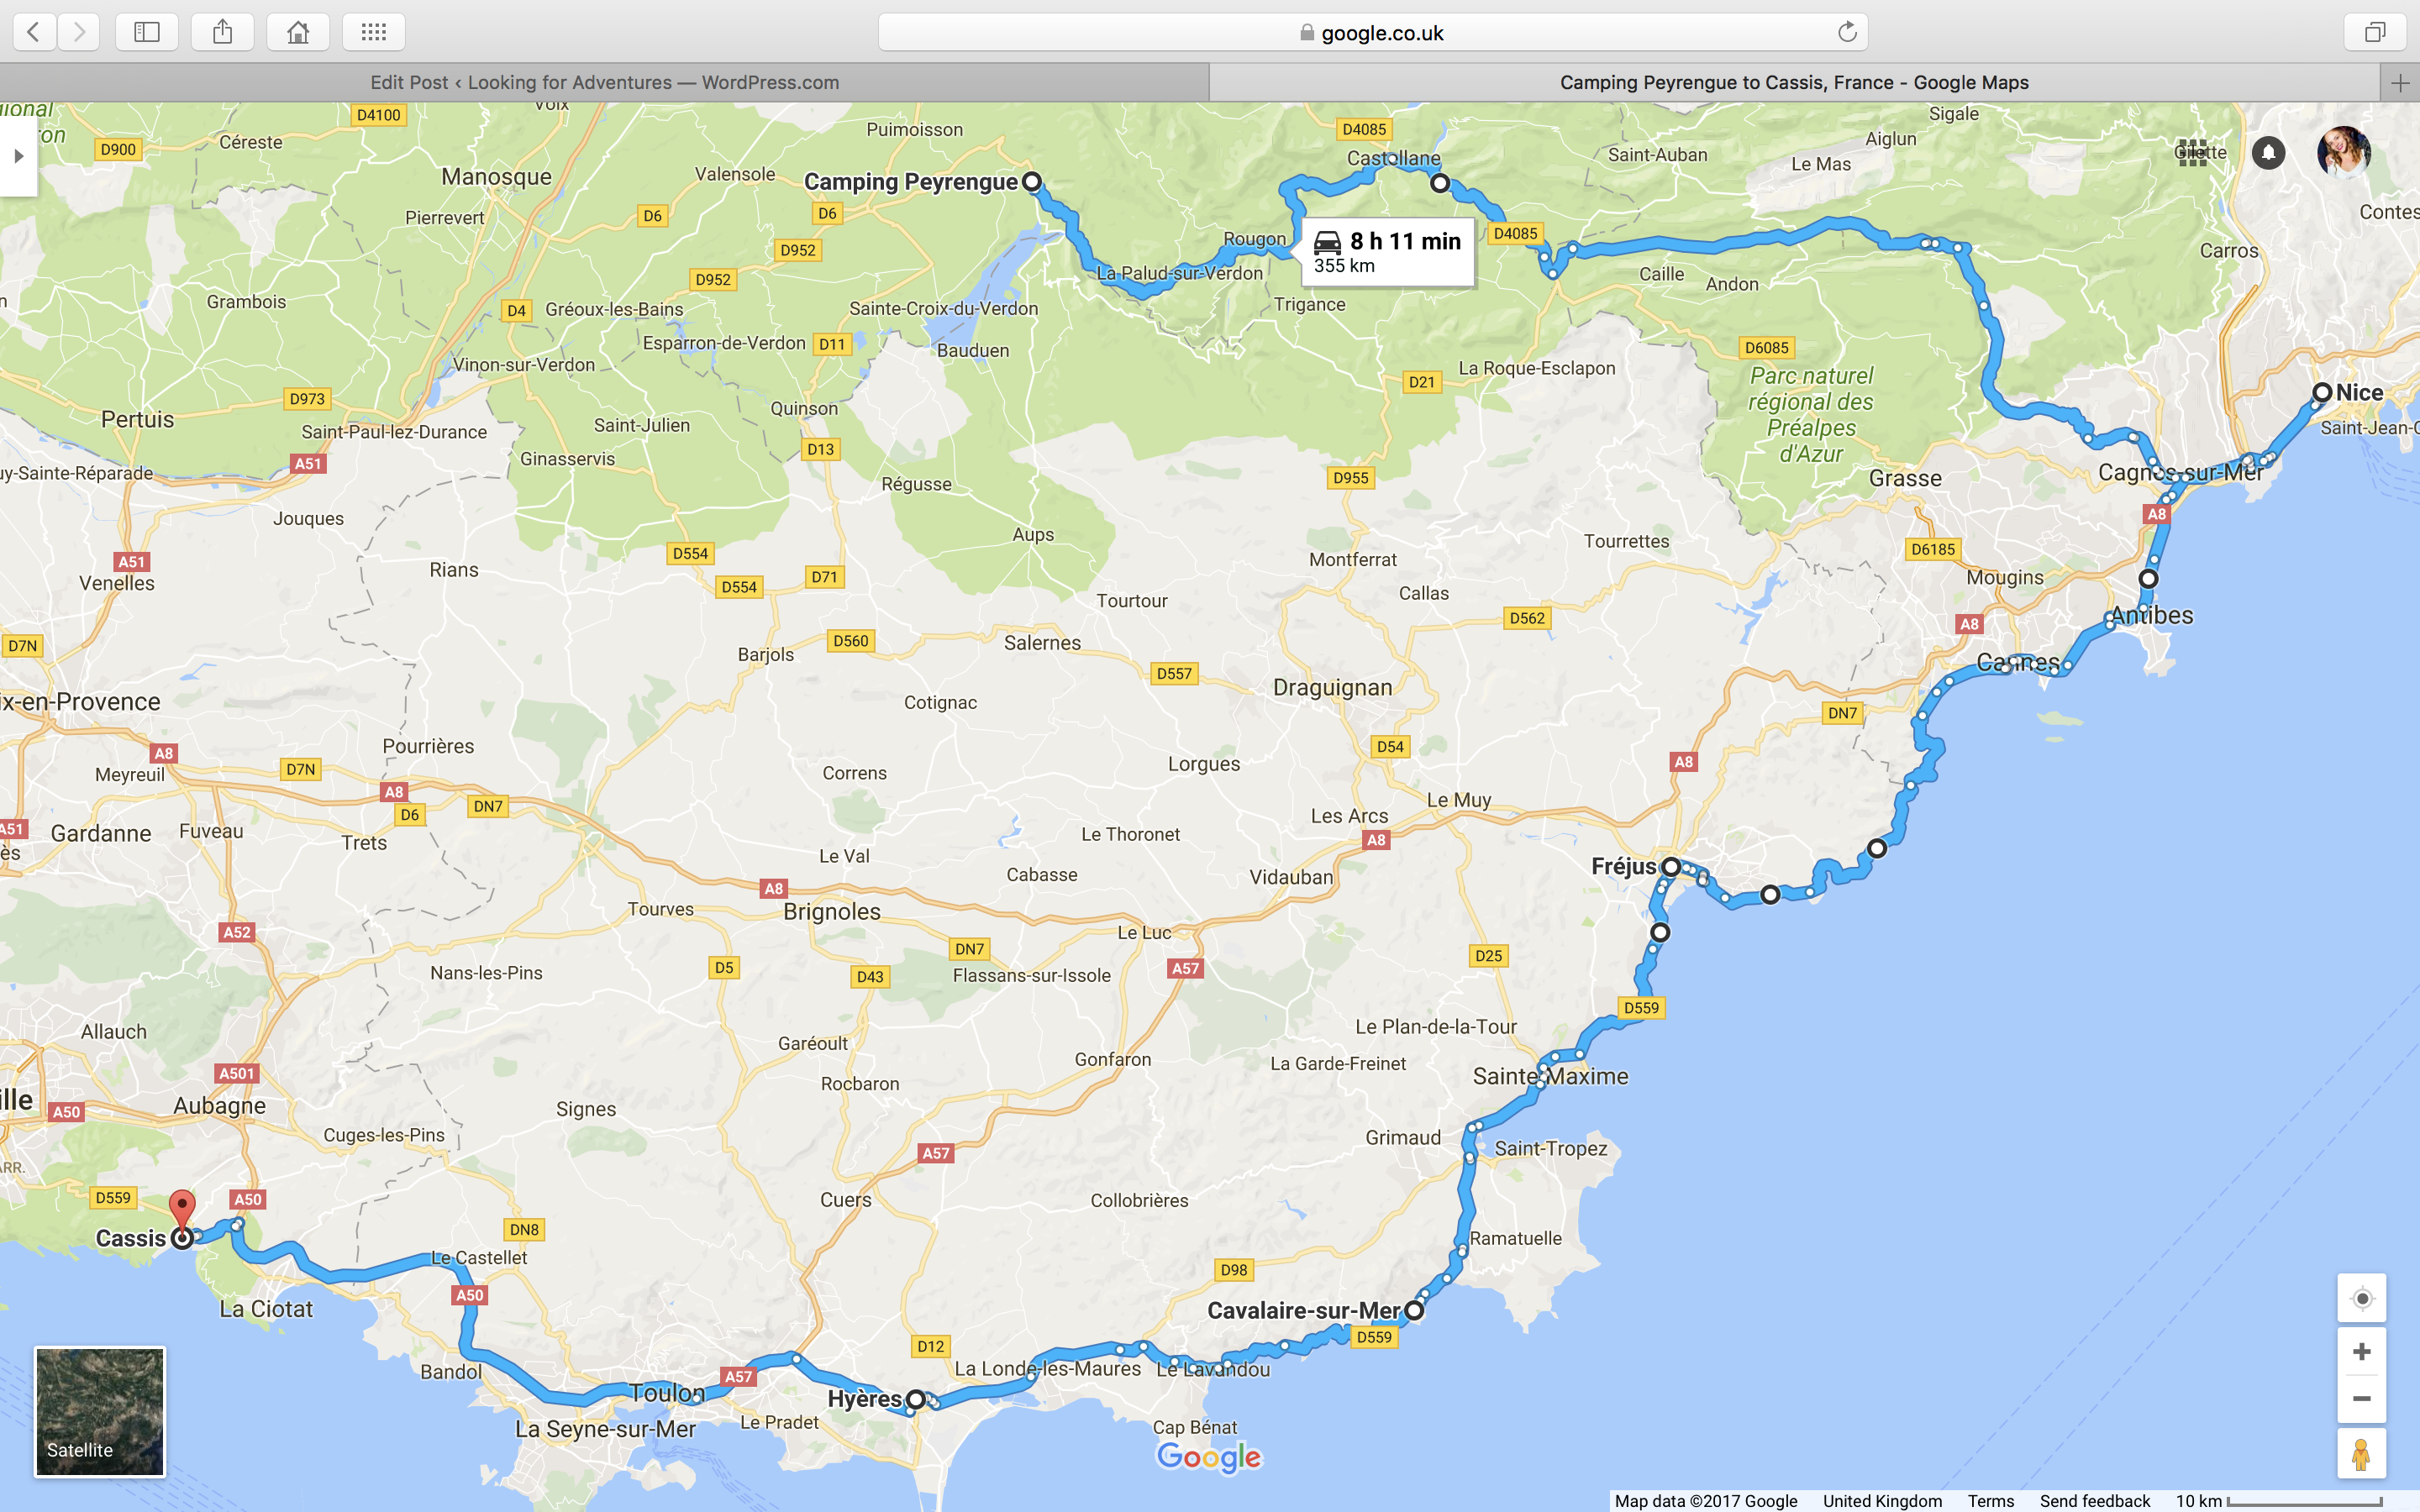 Motorbiking from London to the South of France Looking for Adventures